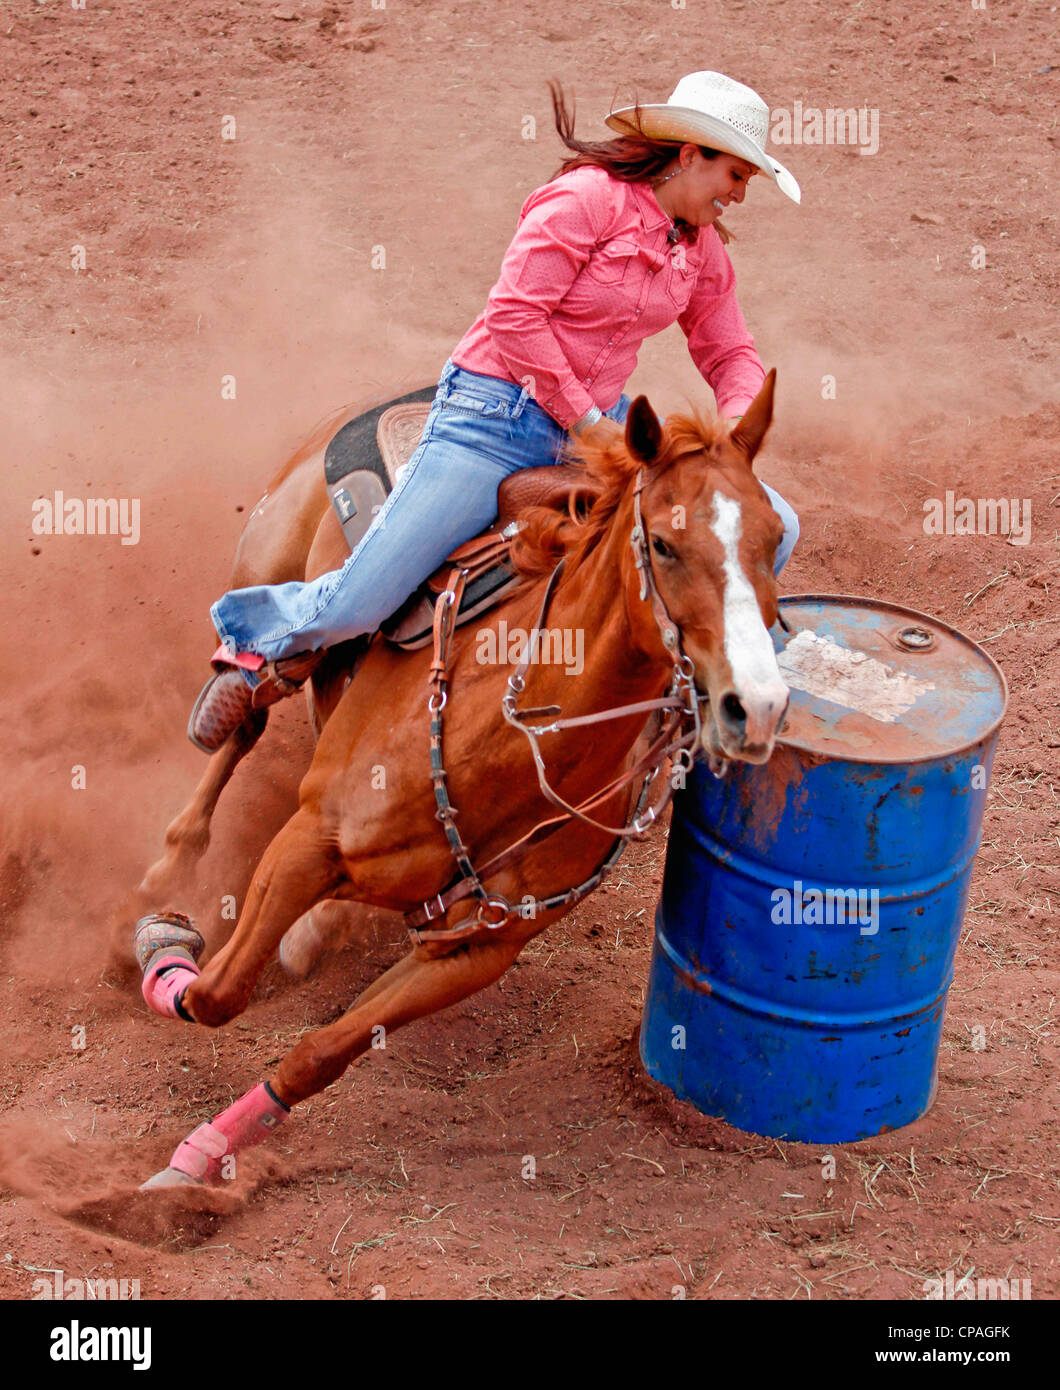 USA, New Mexico, Mescalero. Woman competing in the barrel racing event at the Annual Indian Rodeo held in Mescalero, - Stock Image